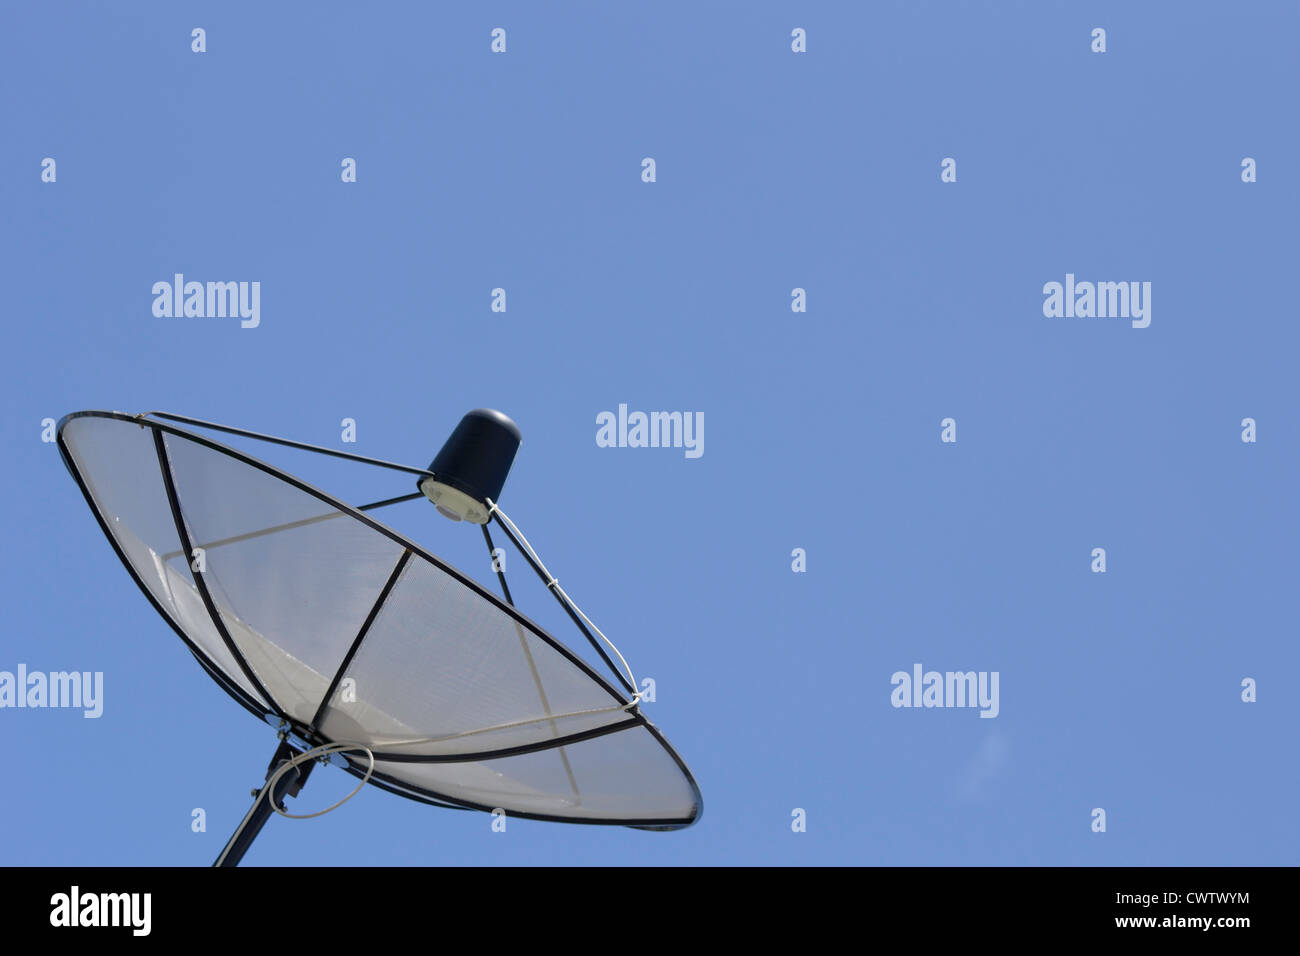 dish sattellite receiver against the blue sky - Stock Image